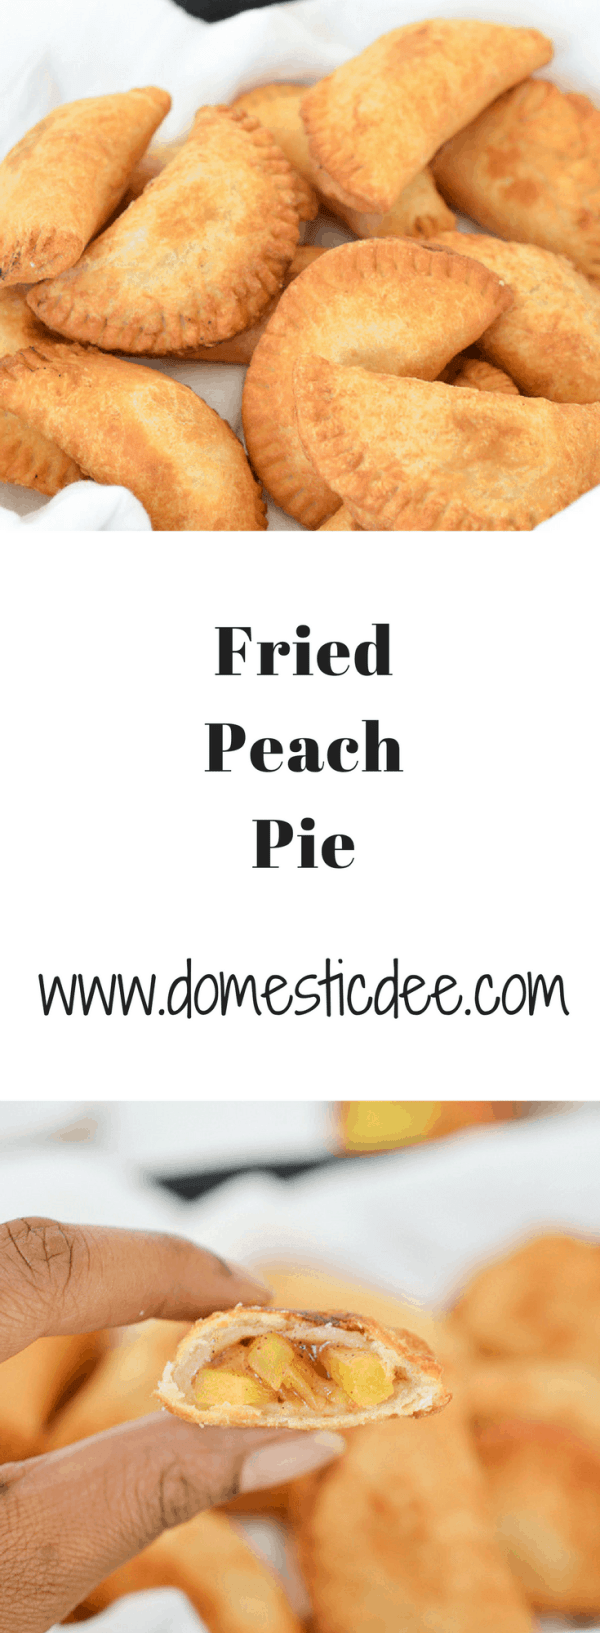 Fried Peach Pies-  These mini fried peach pies are crispy, flaky and delicious.They are filled with a cinnamon peach filling then fried to perfection. domesticdee.com